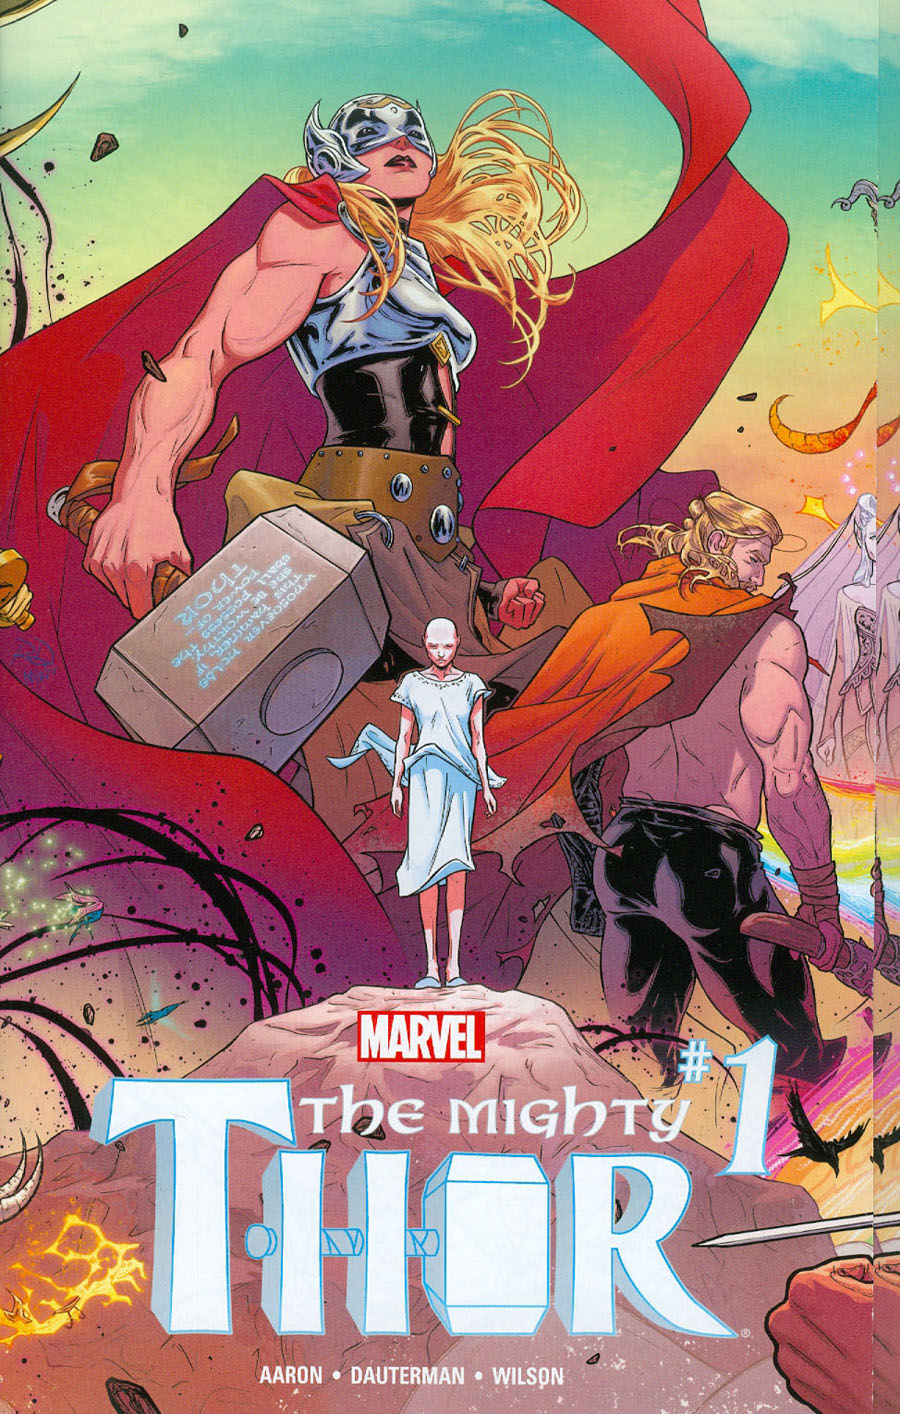 Mighty Thor Vol 2 #1 Cover A Regular Russell Dauterman Wraparound Gatefold Cover